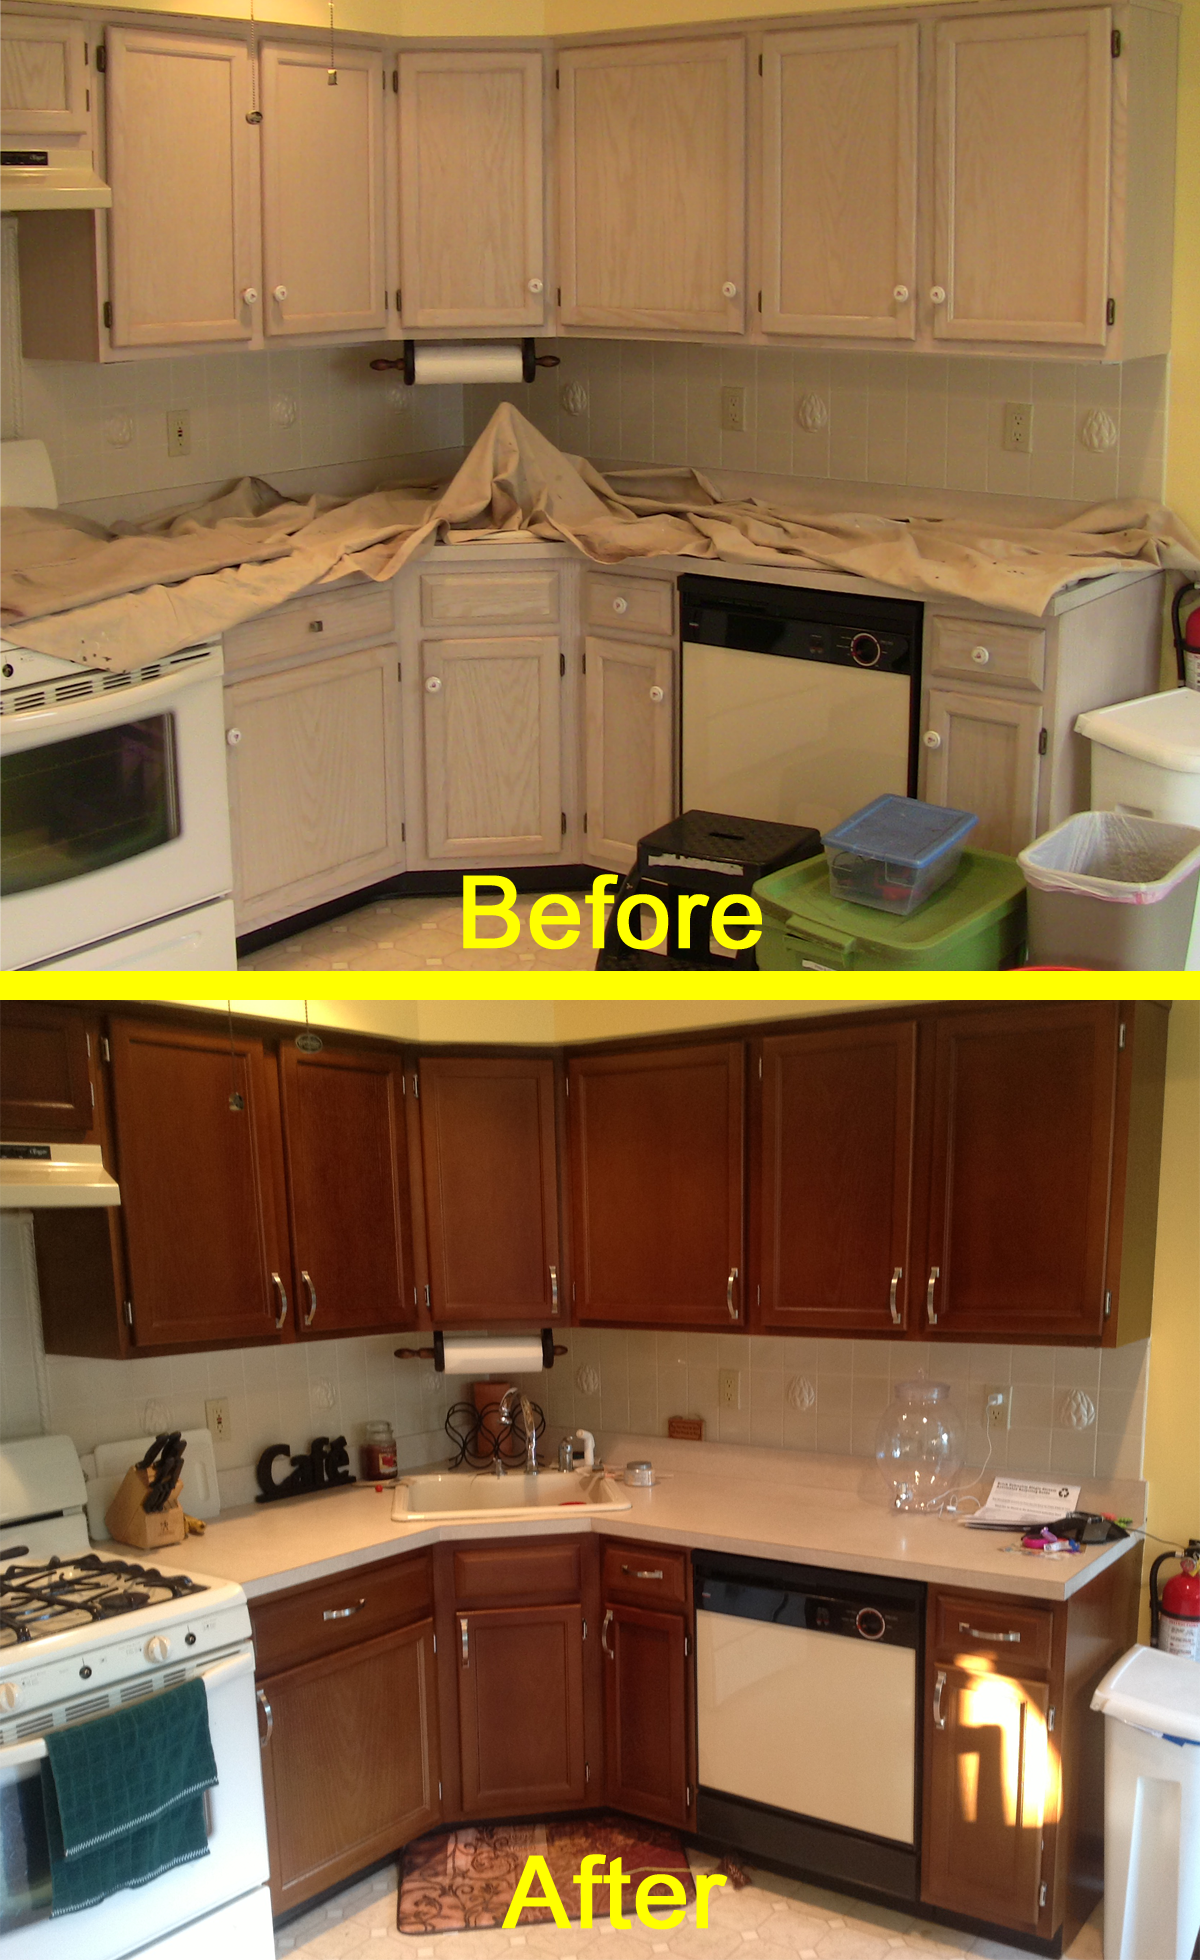 Here S Our Kitchen Before And After The N Hance Wood Color Change Process Please See The Full Revi Kitchen Cabinets Before And After Kitchen Kitchen Cabinets